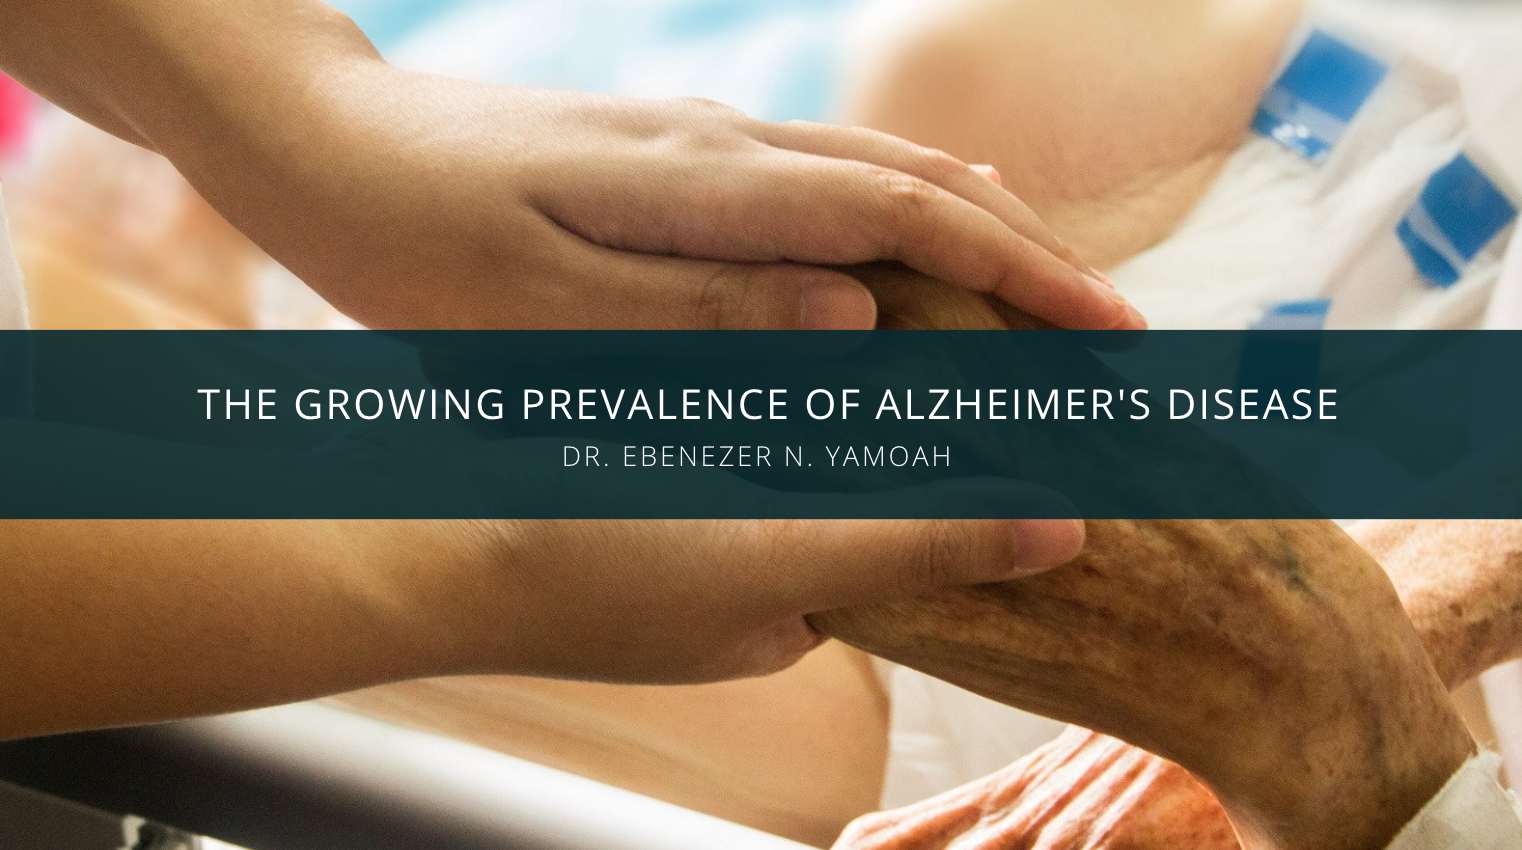 Dr. Ebenezer N. Yamoah Discusses the Growing Prevalence of Alzheimer's Disease